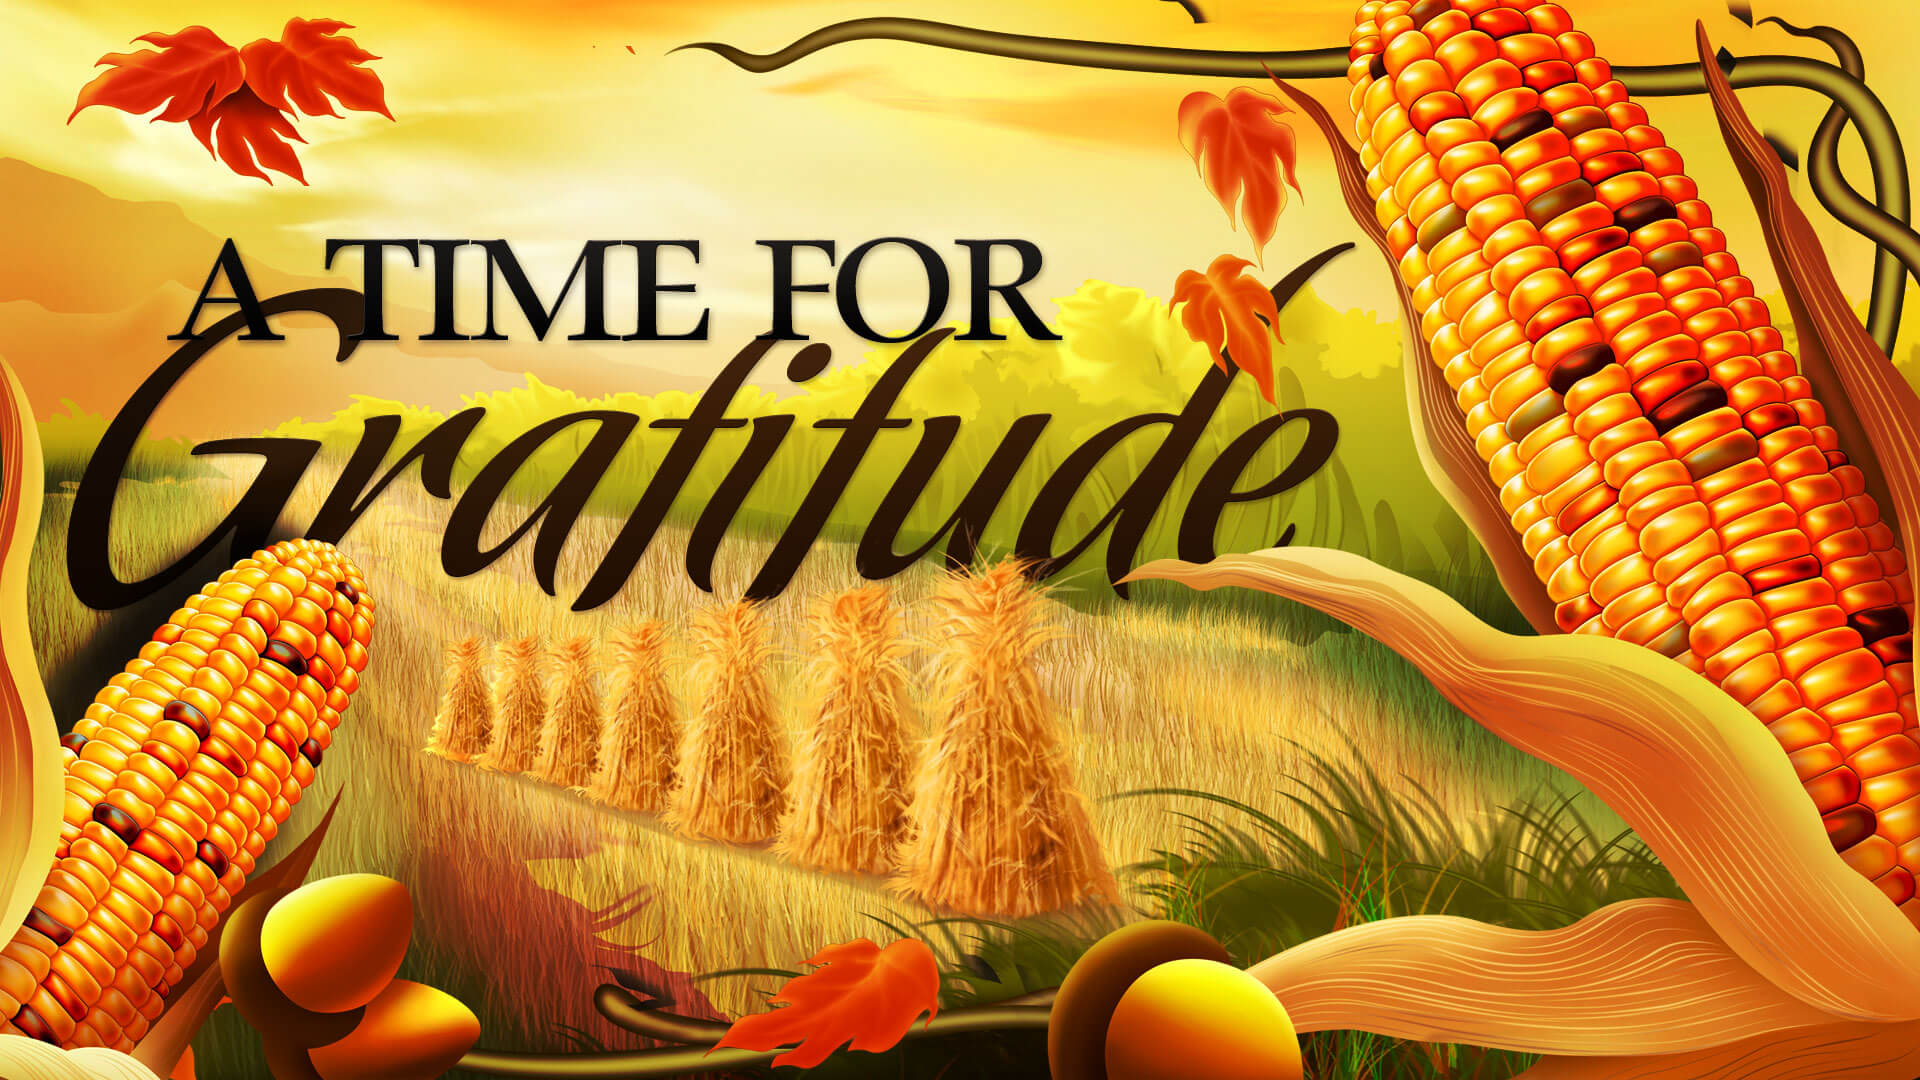 happy thanksgiving day gratitude food corn latest hd wallpaper